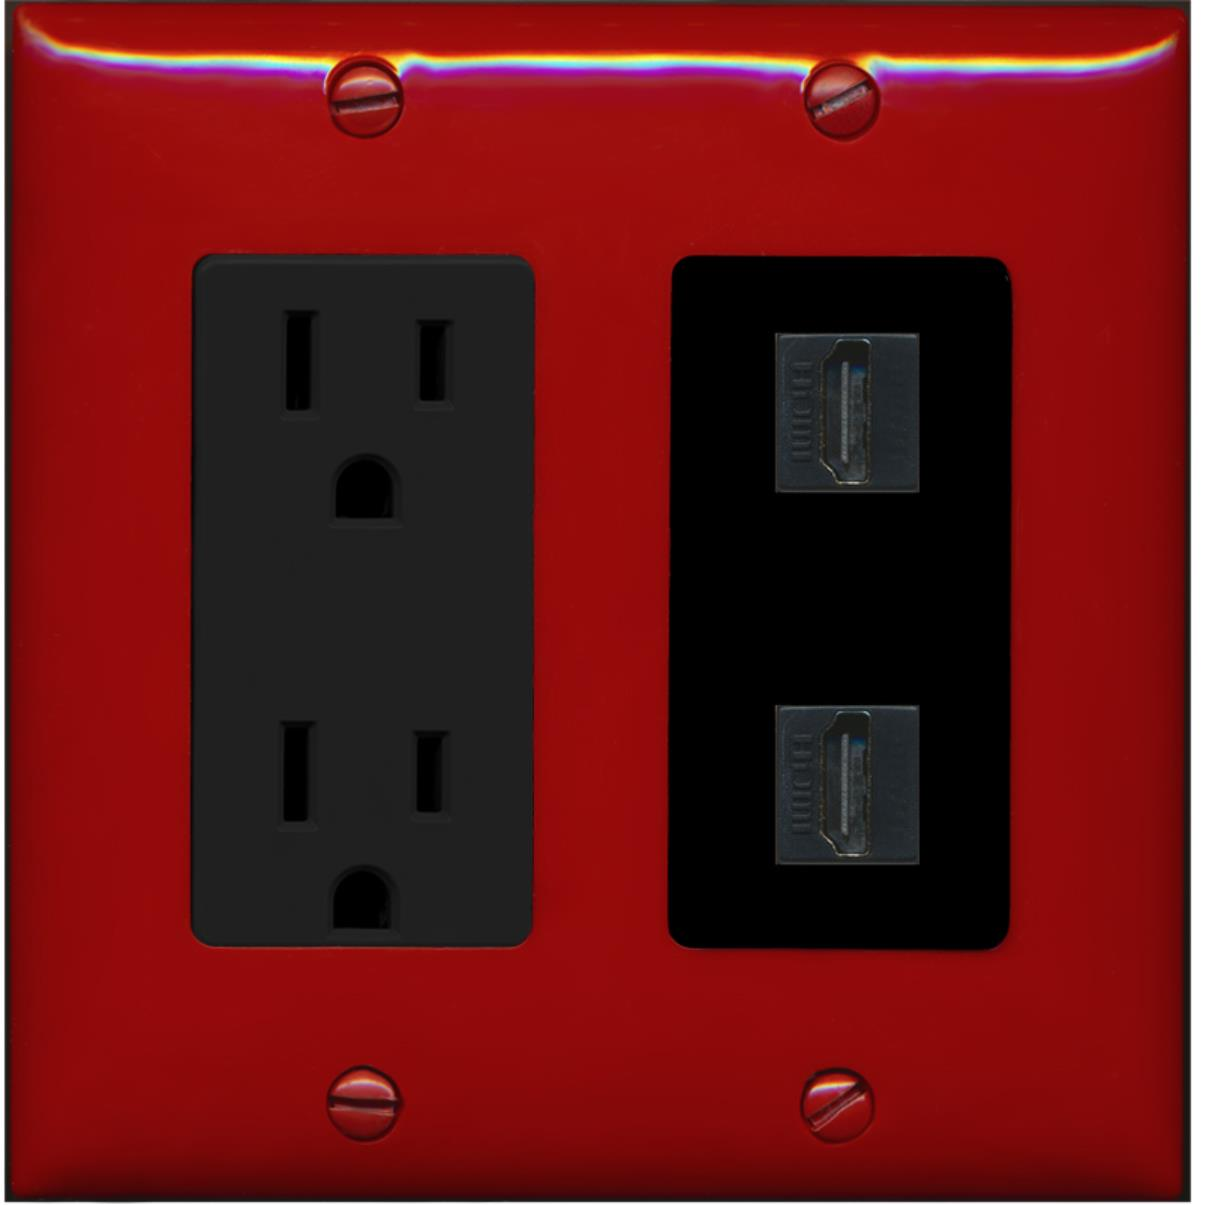 RiteAV - 15 Amp Power Outlet 2 Port HDMI Decora Wall Plate - Red/Black